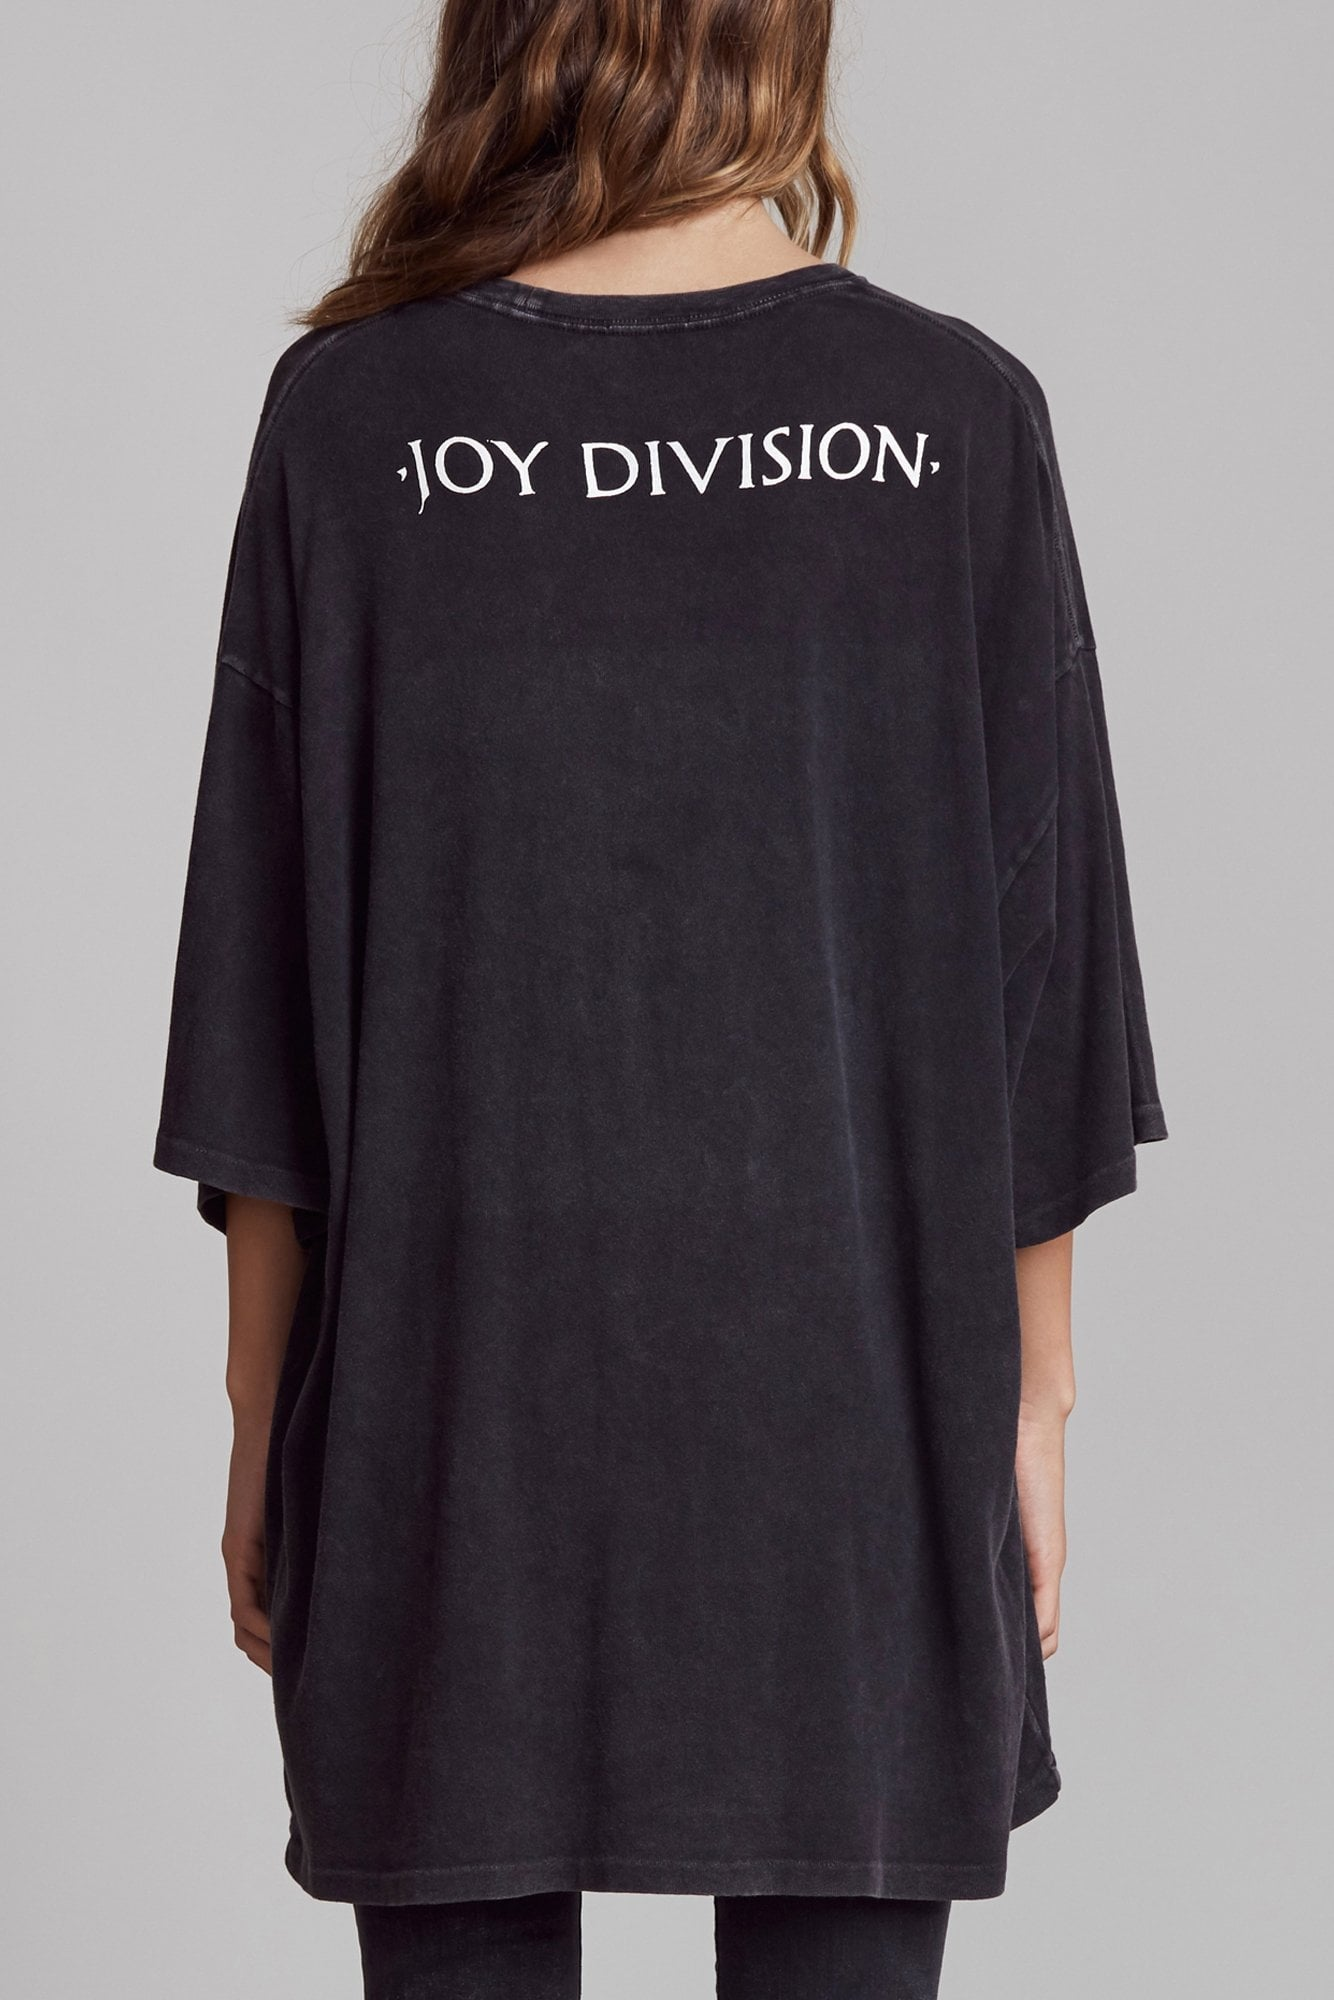 Joy Division Warsaw Oversized T - Acid Black